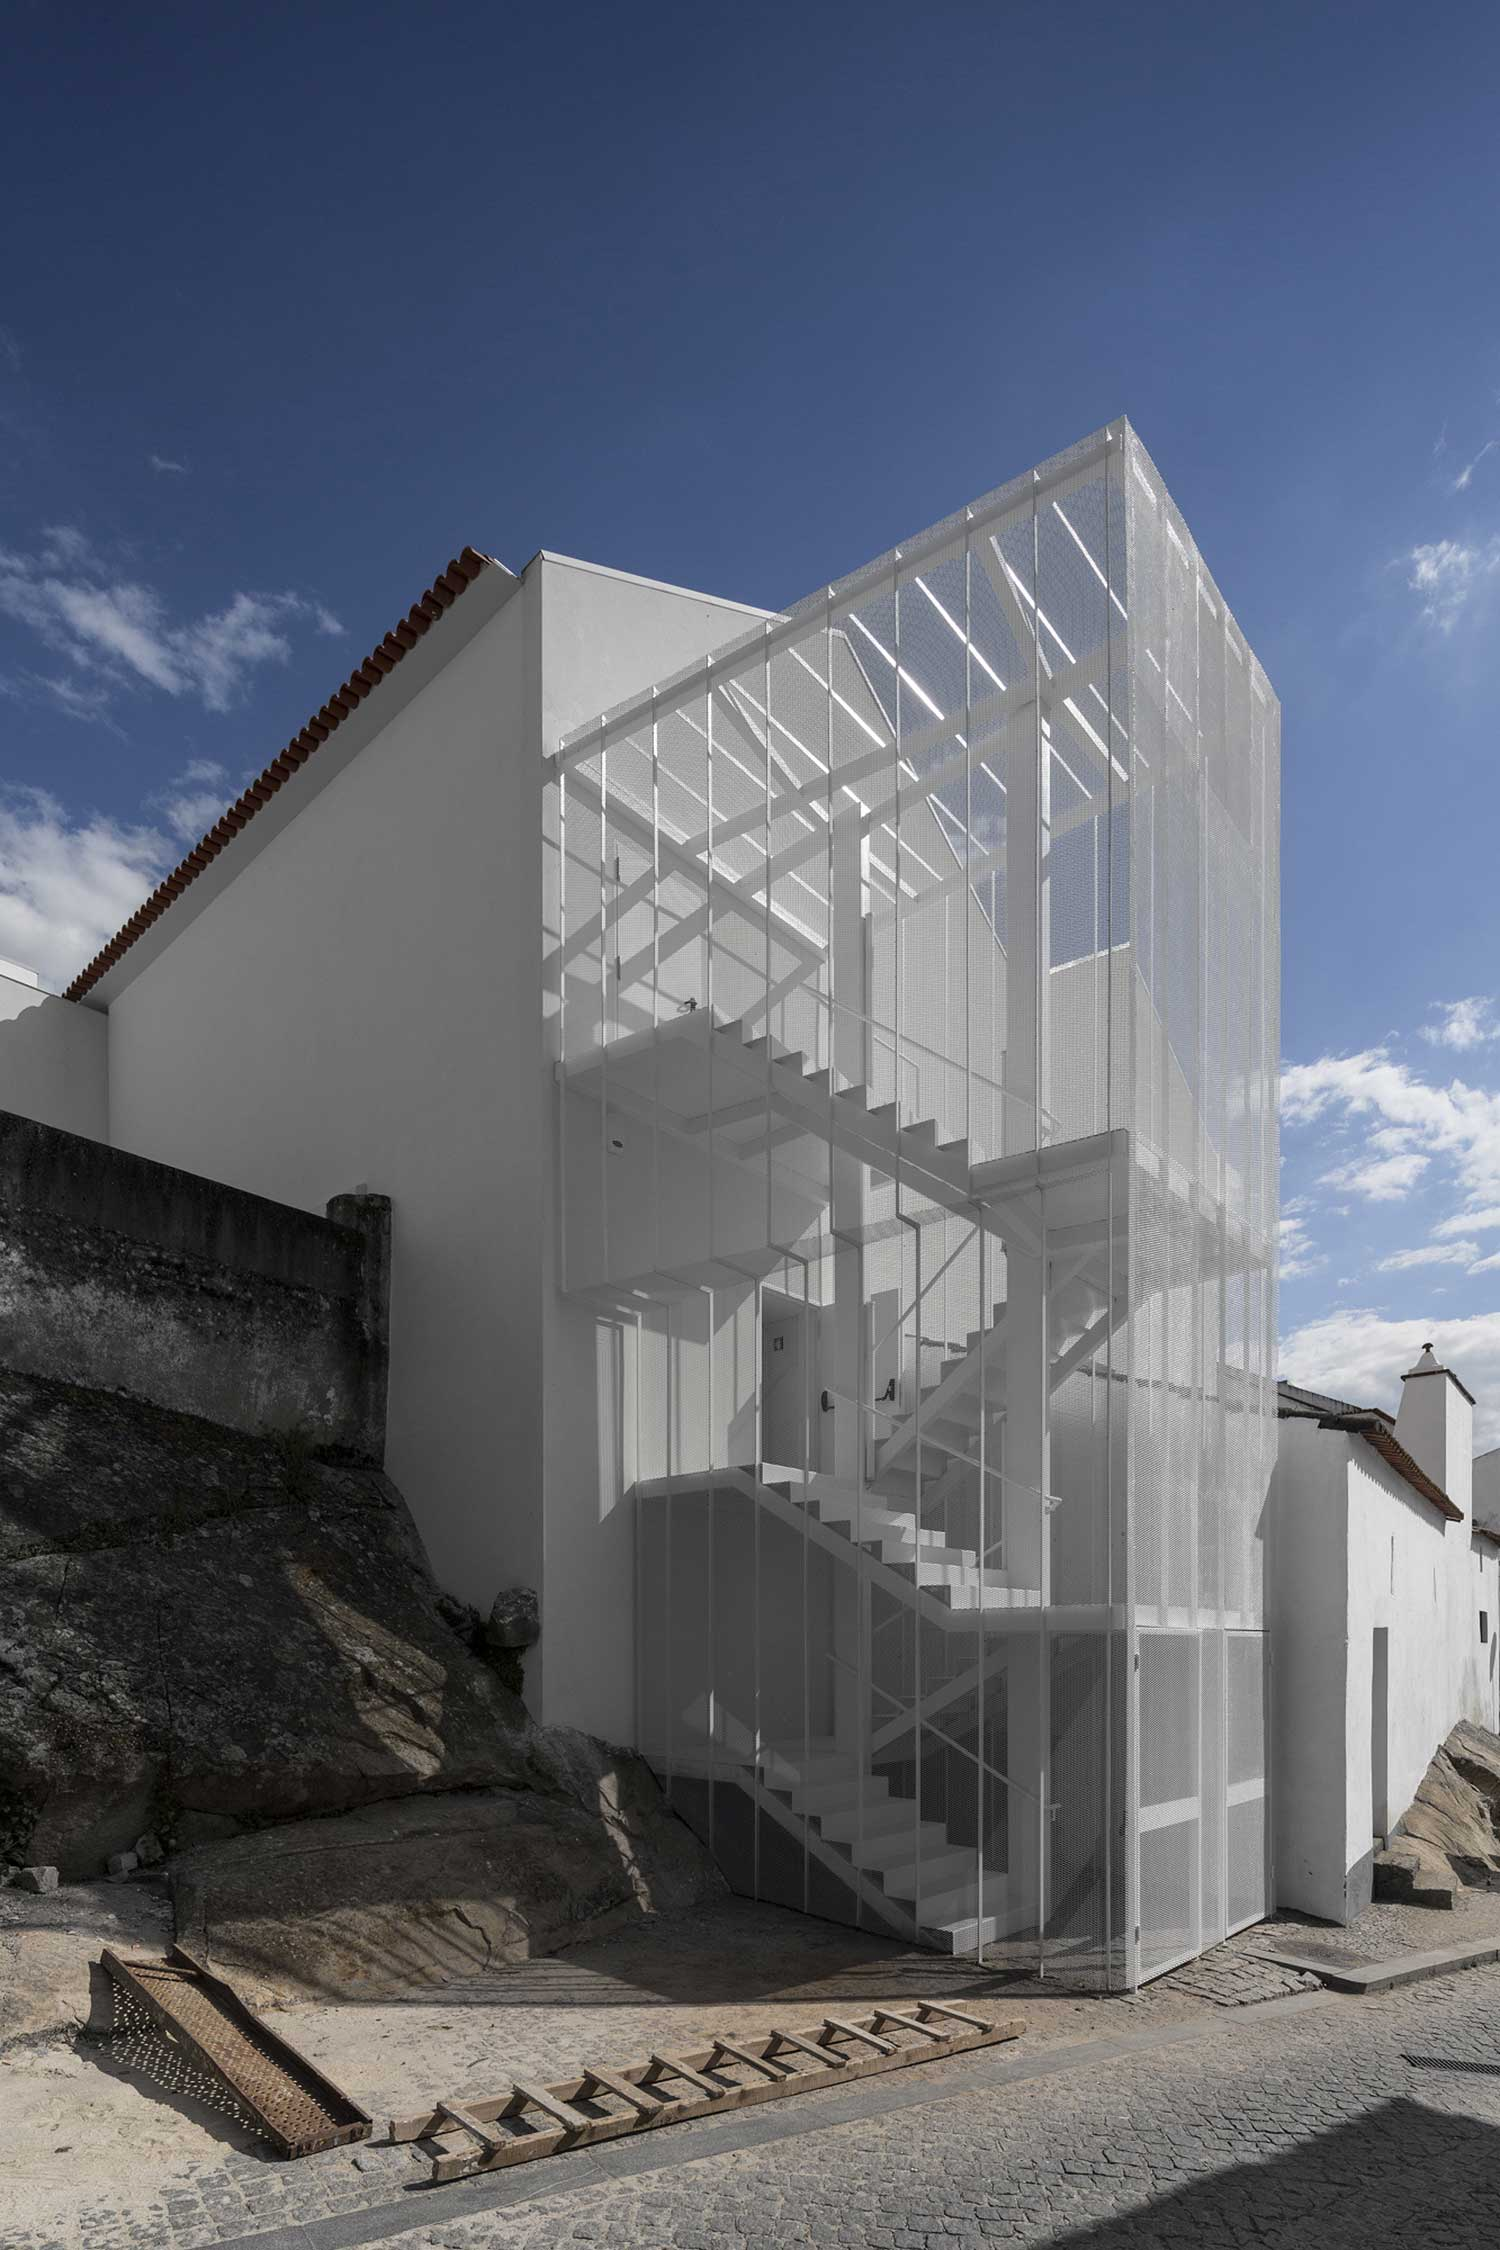 Tapestry-Museum-By-CVDB-Architects-Portugal-Yellowtrace-14